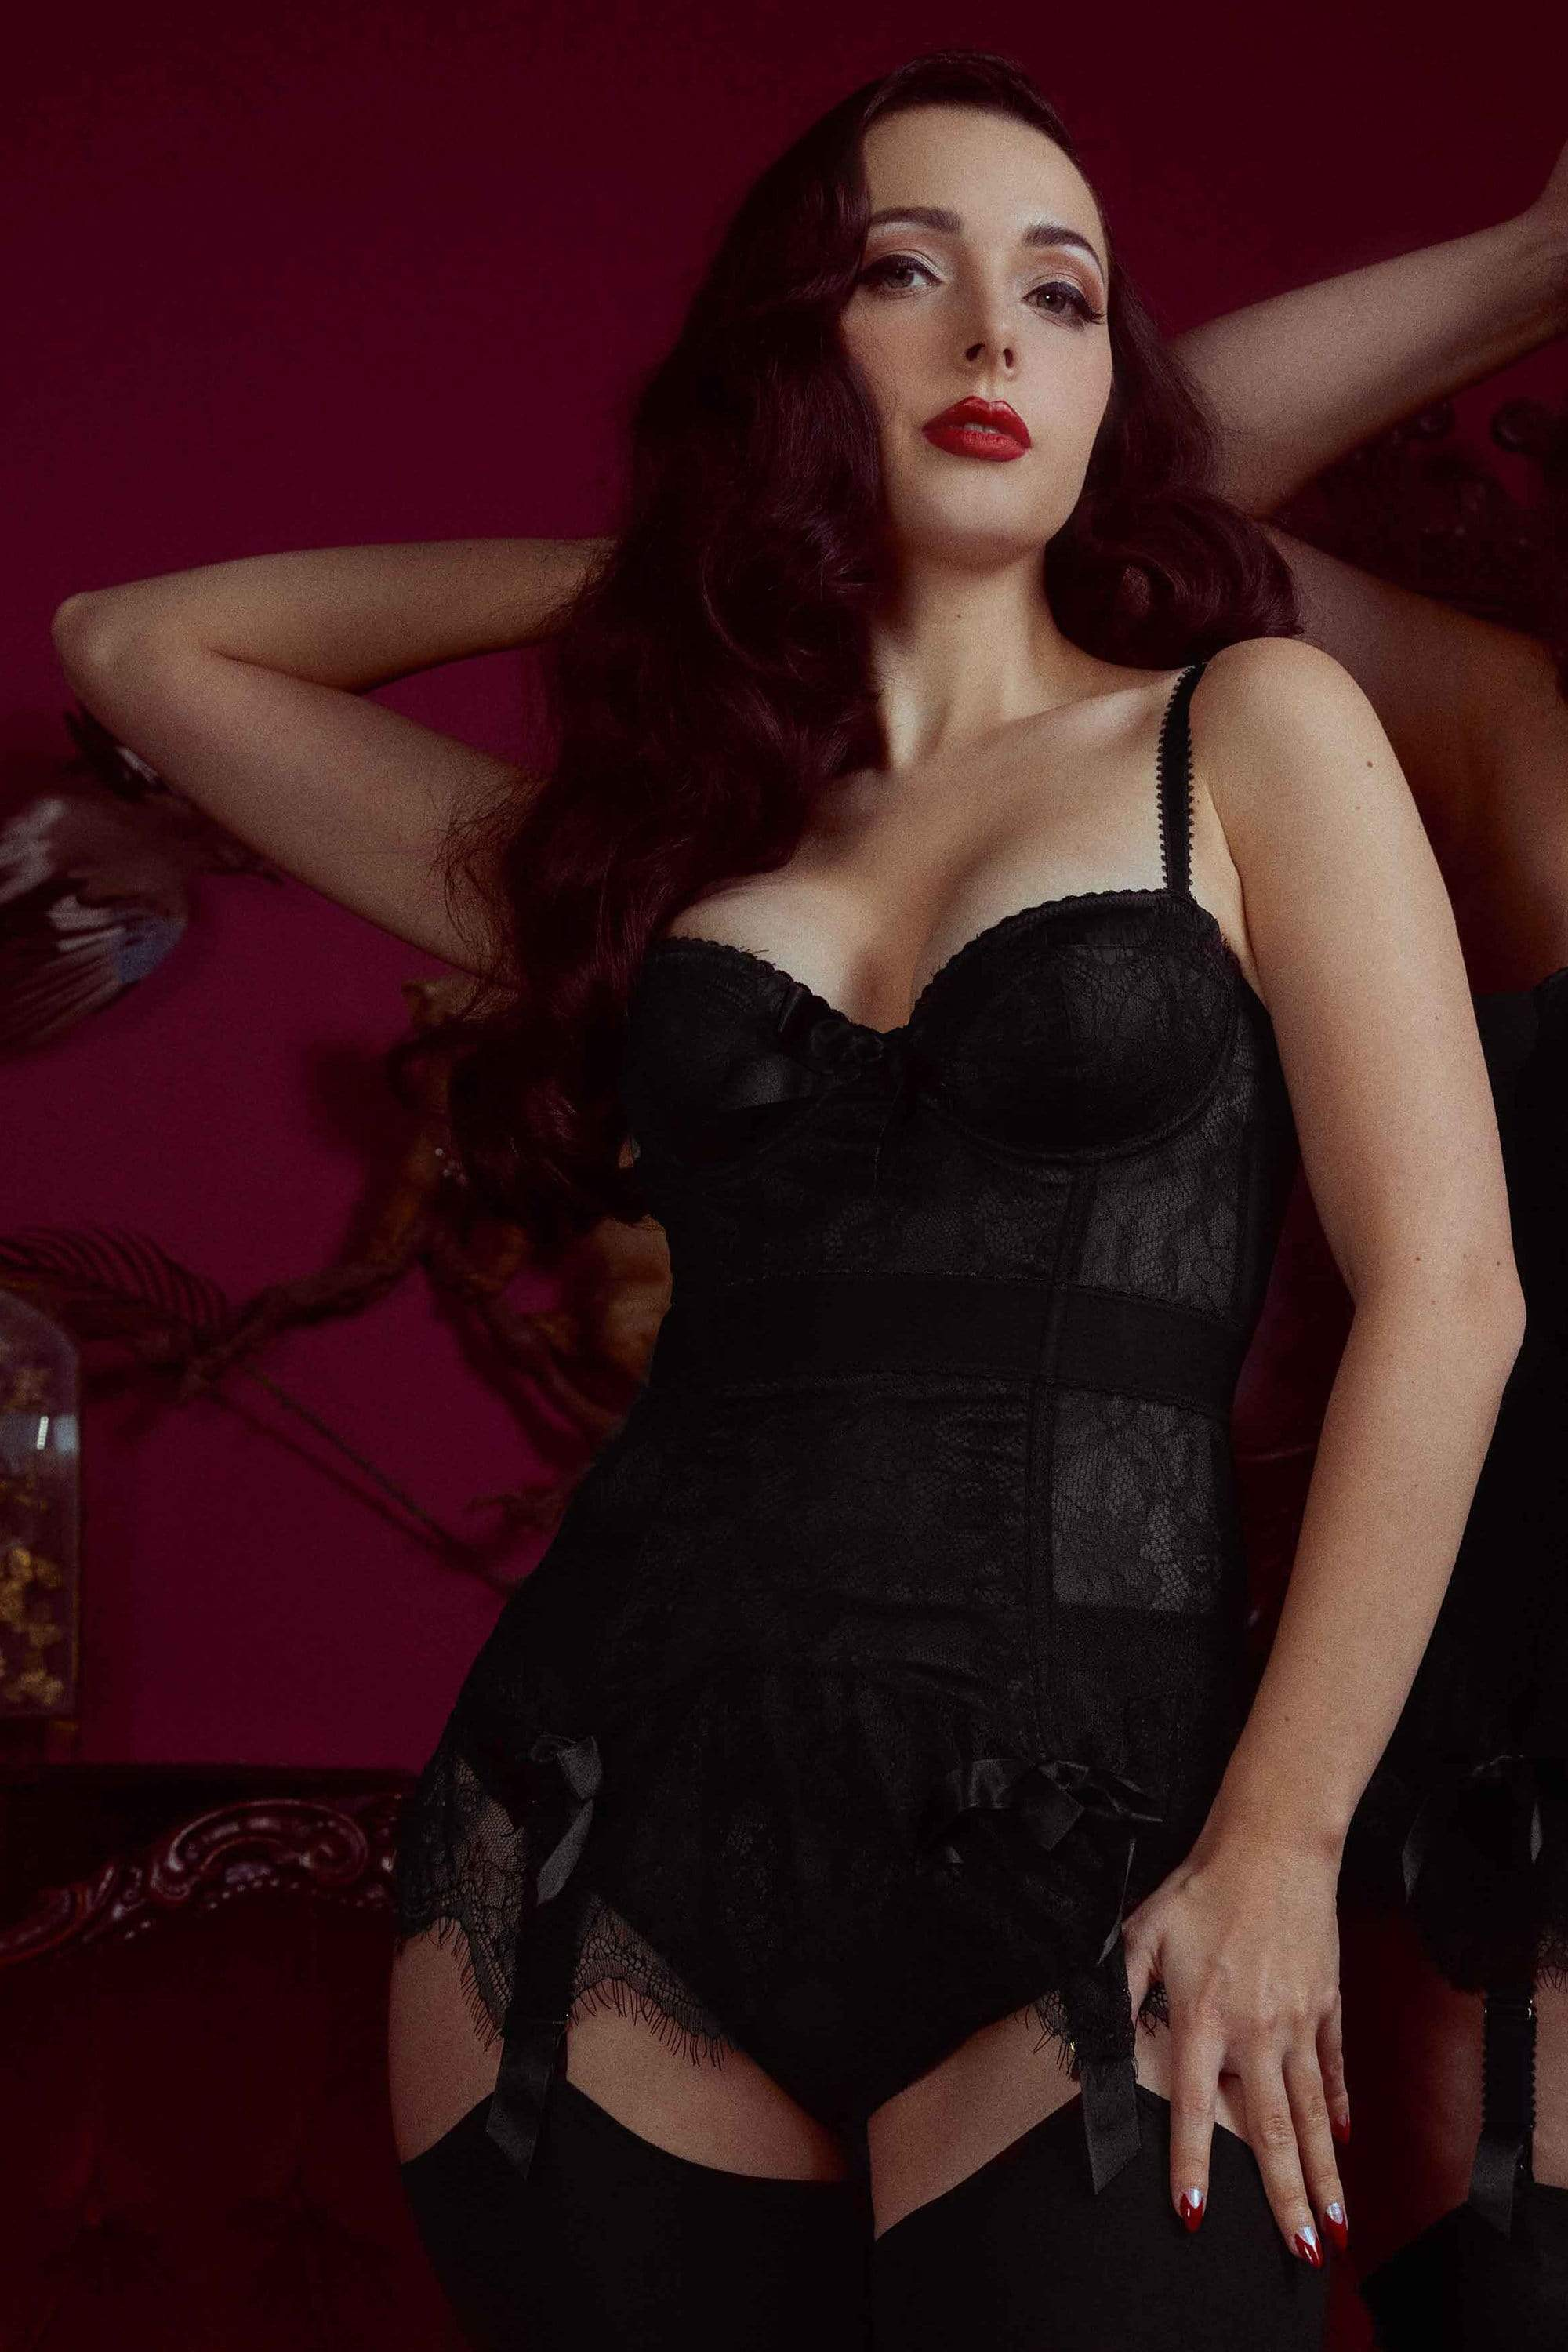 Bettie Page Tempest Black Lace Basque with Bows 32F